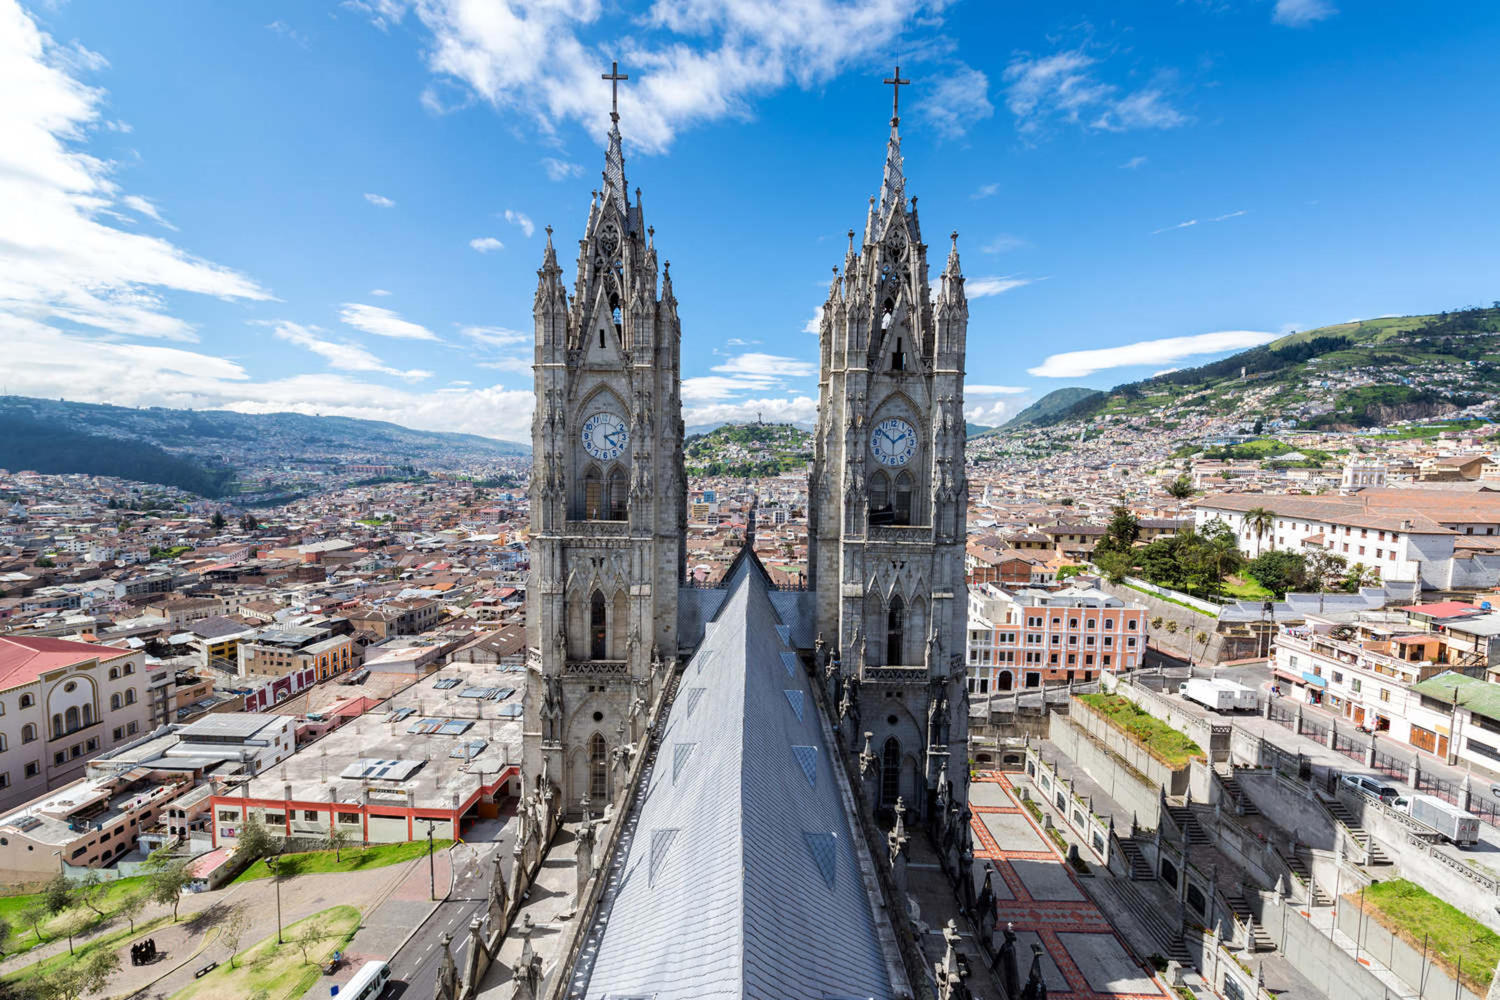 View of the towers of Quito's basilica